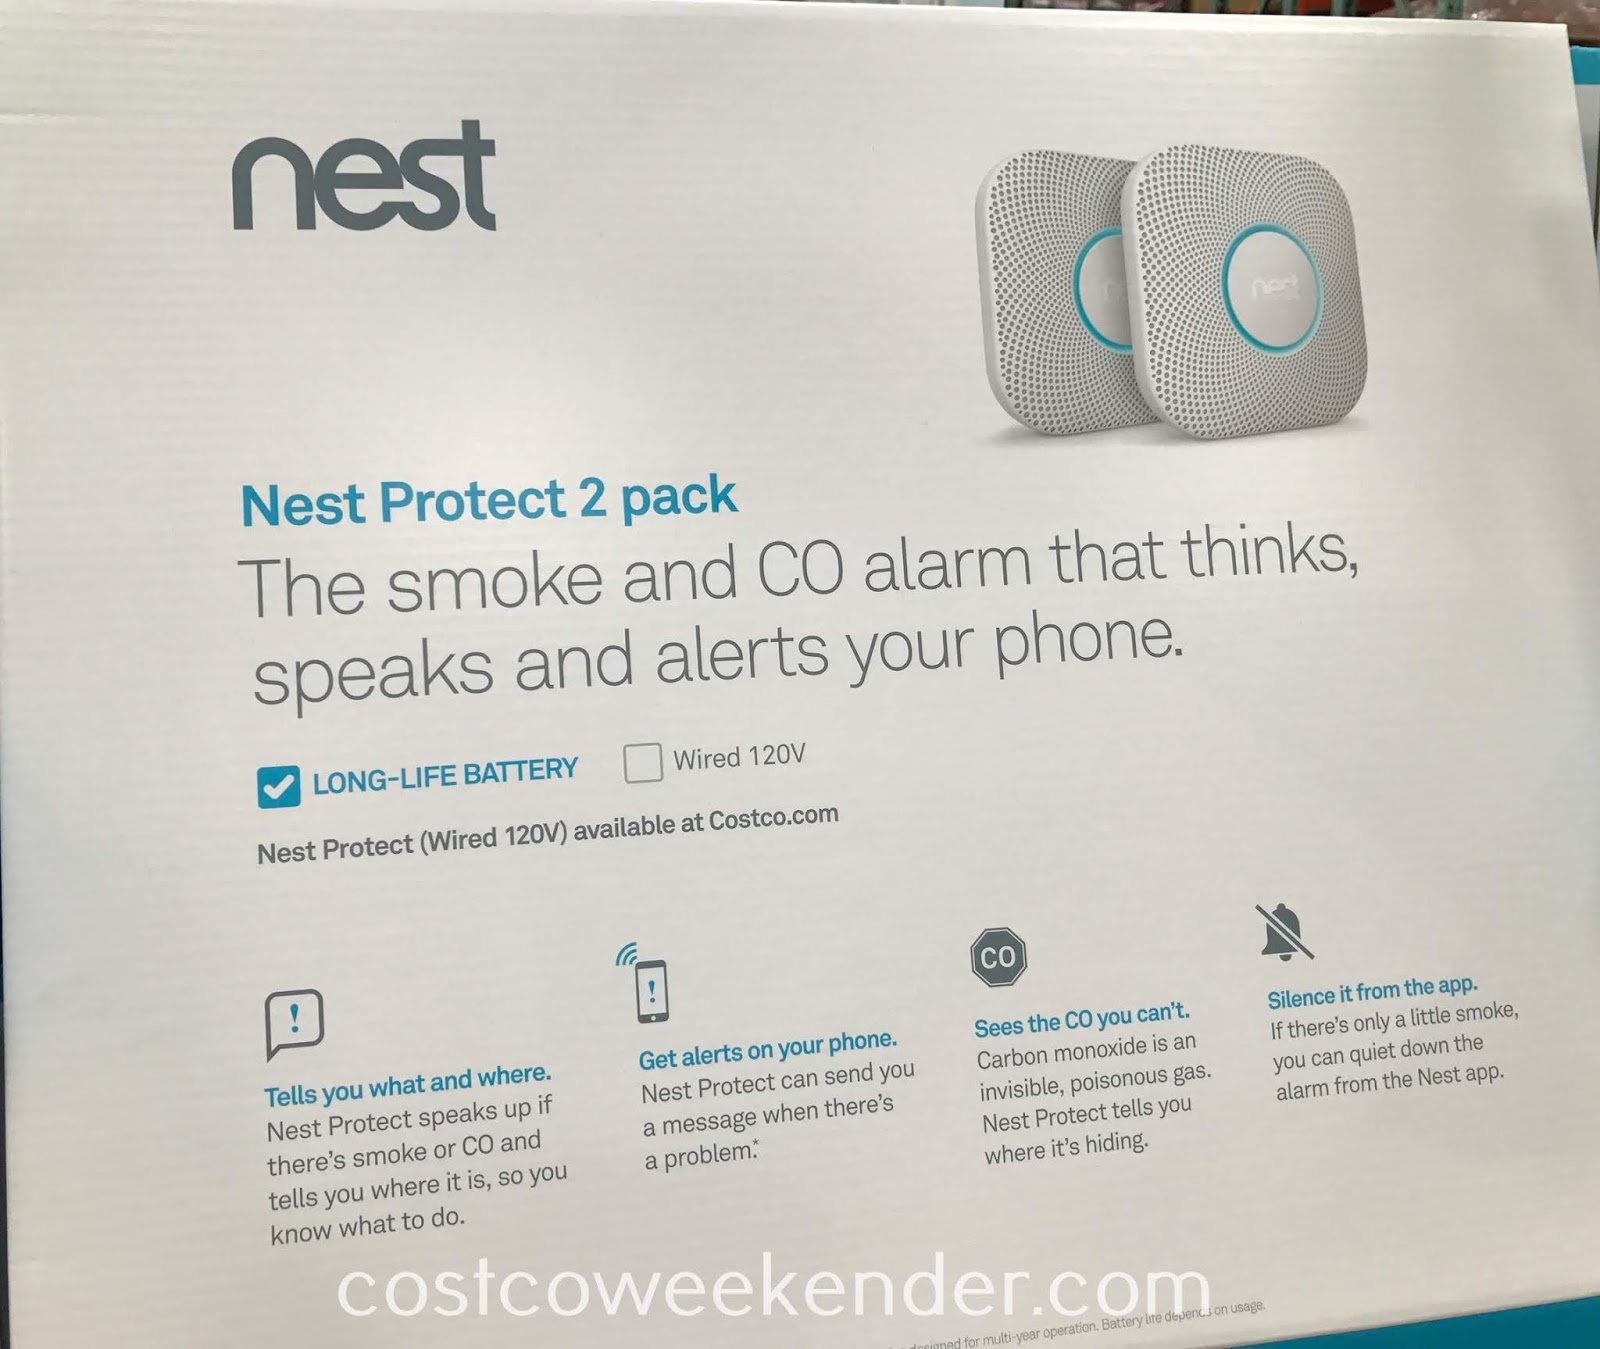 Be safe from fire or carbon monoxide in your home with the Nest Protect Battery Power Smoke and CO Alarm